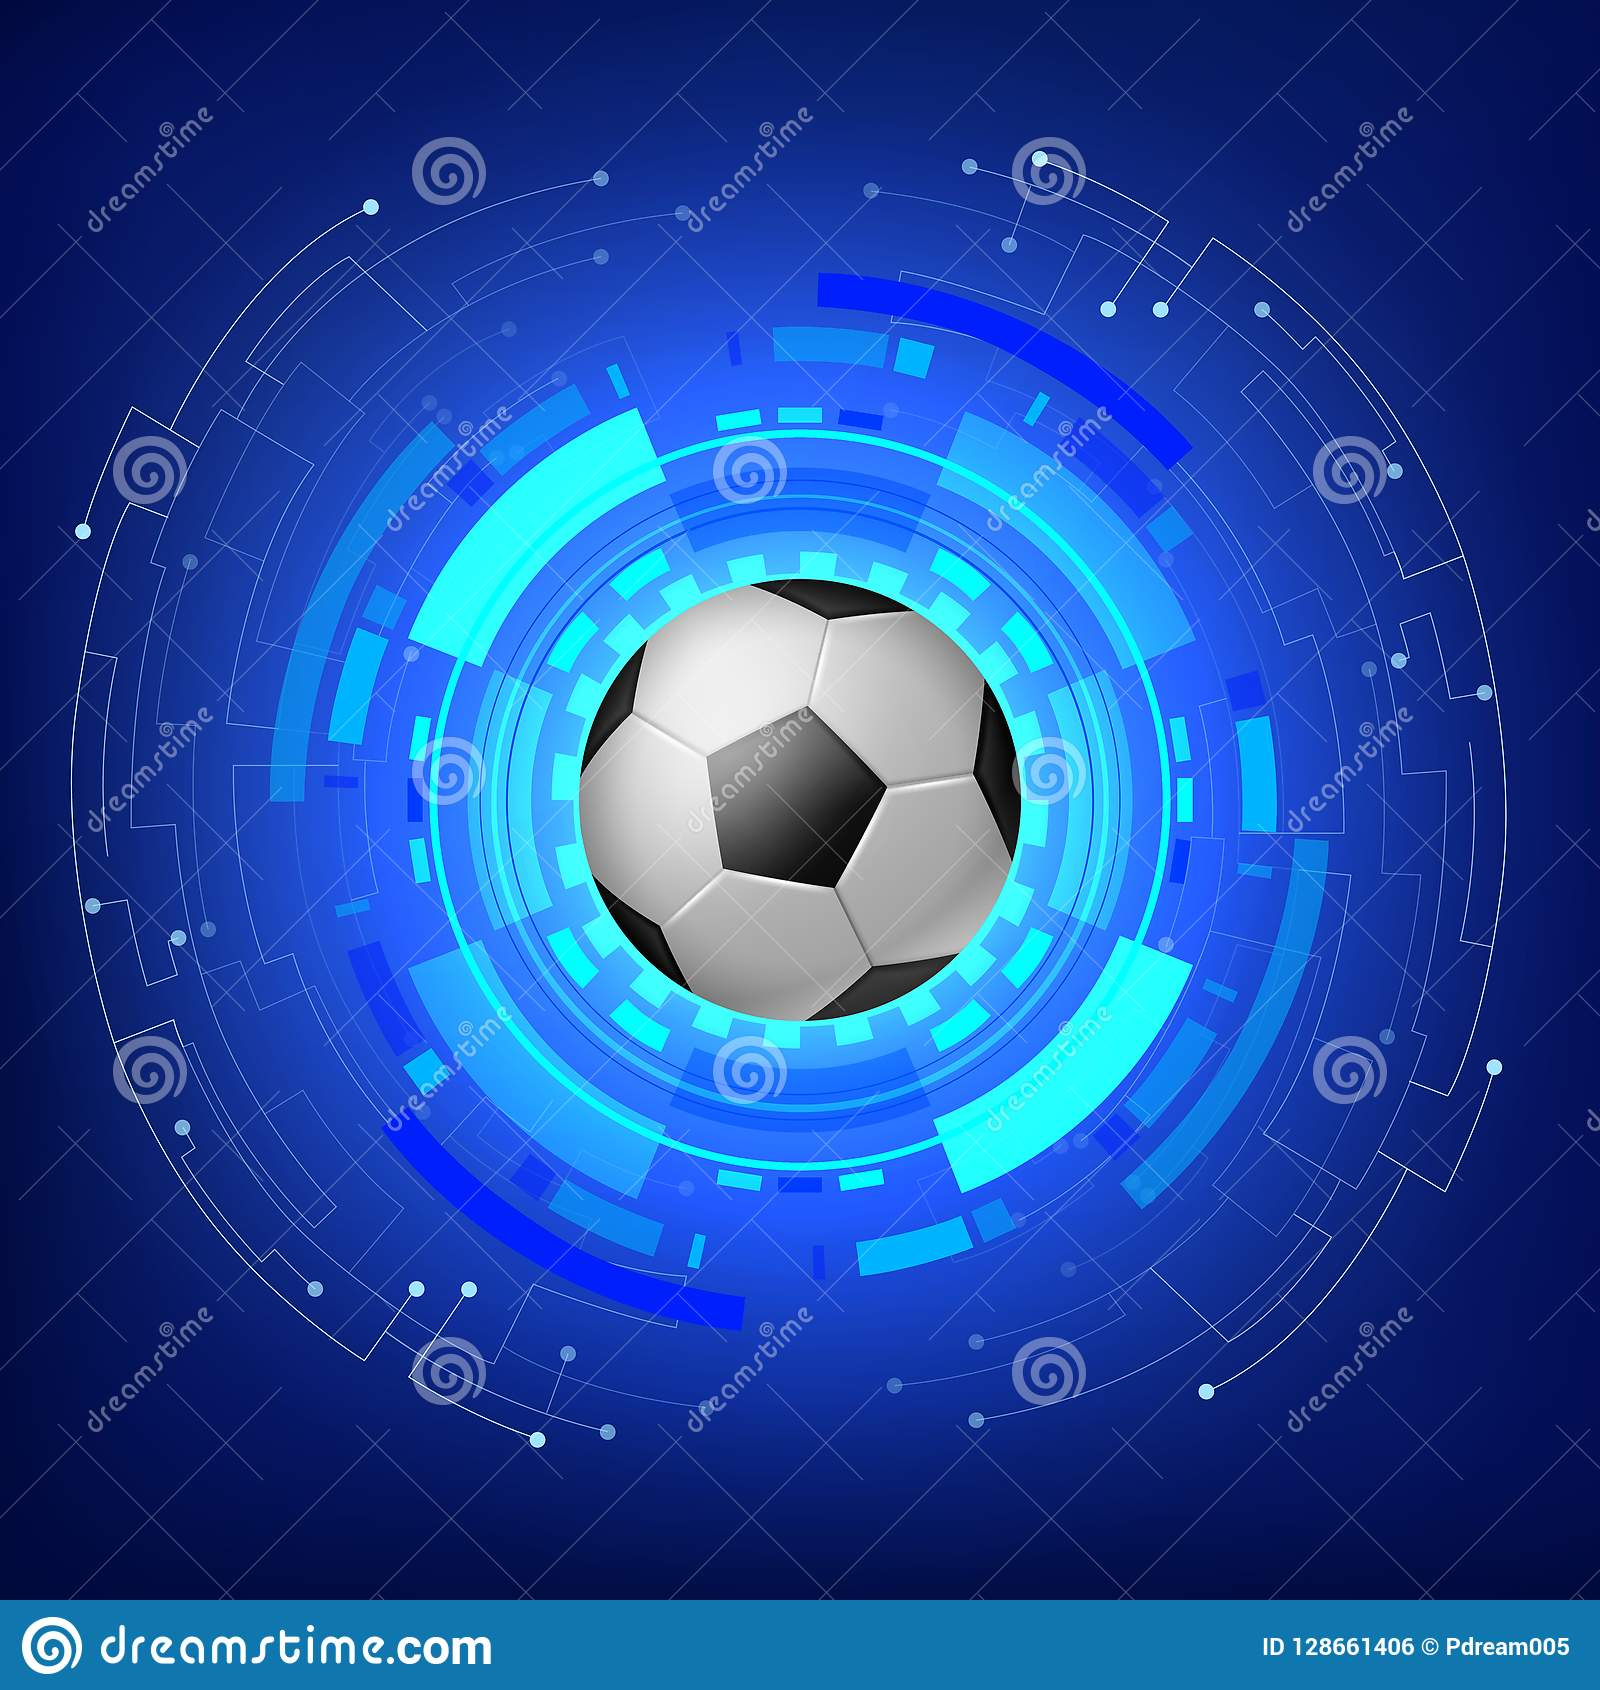 Soccer ball with Technology modern background .